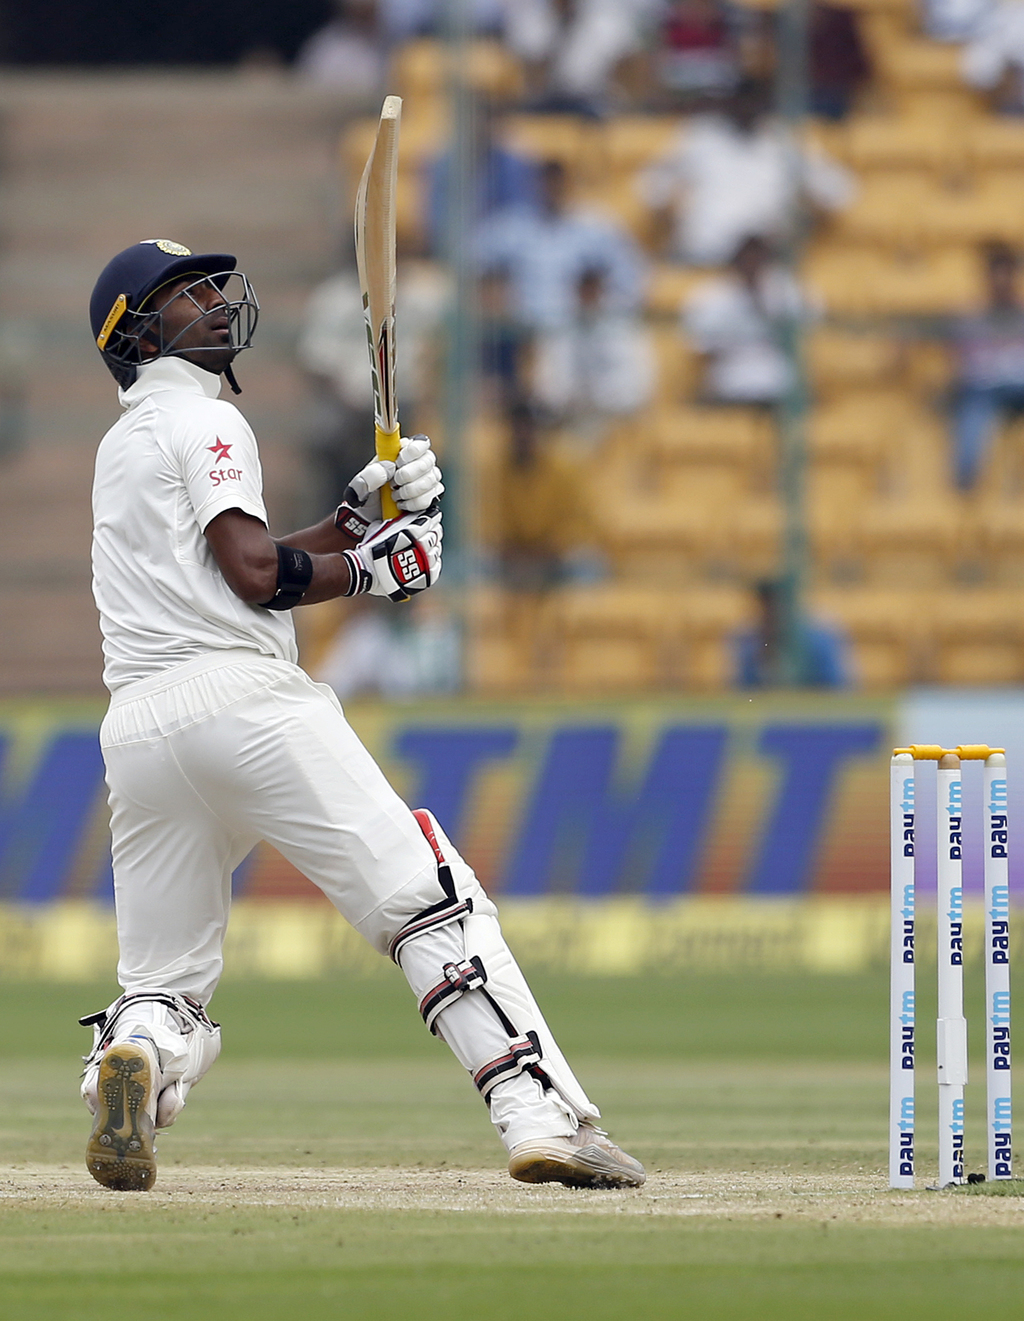 India's Abhinav Mukund watches his shot during the third day of their second test cricket match against Australia in Bangalore, India, ...